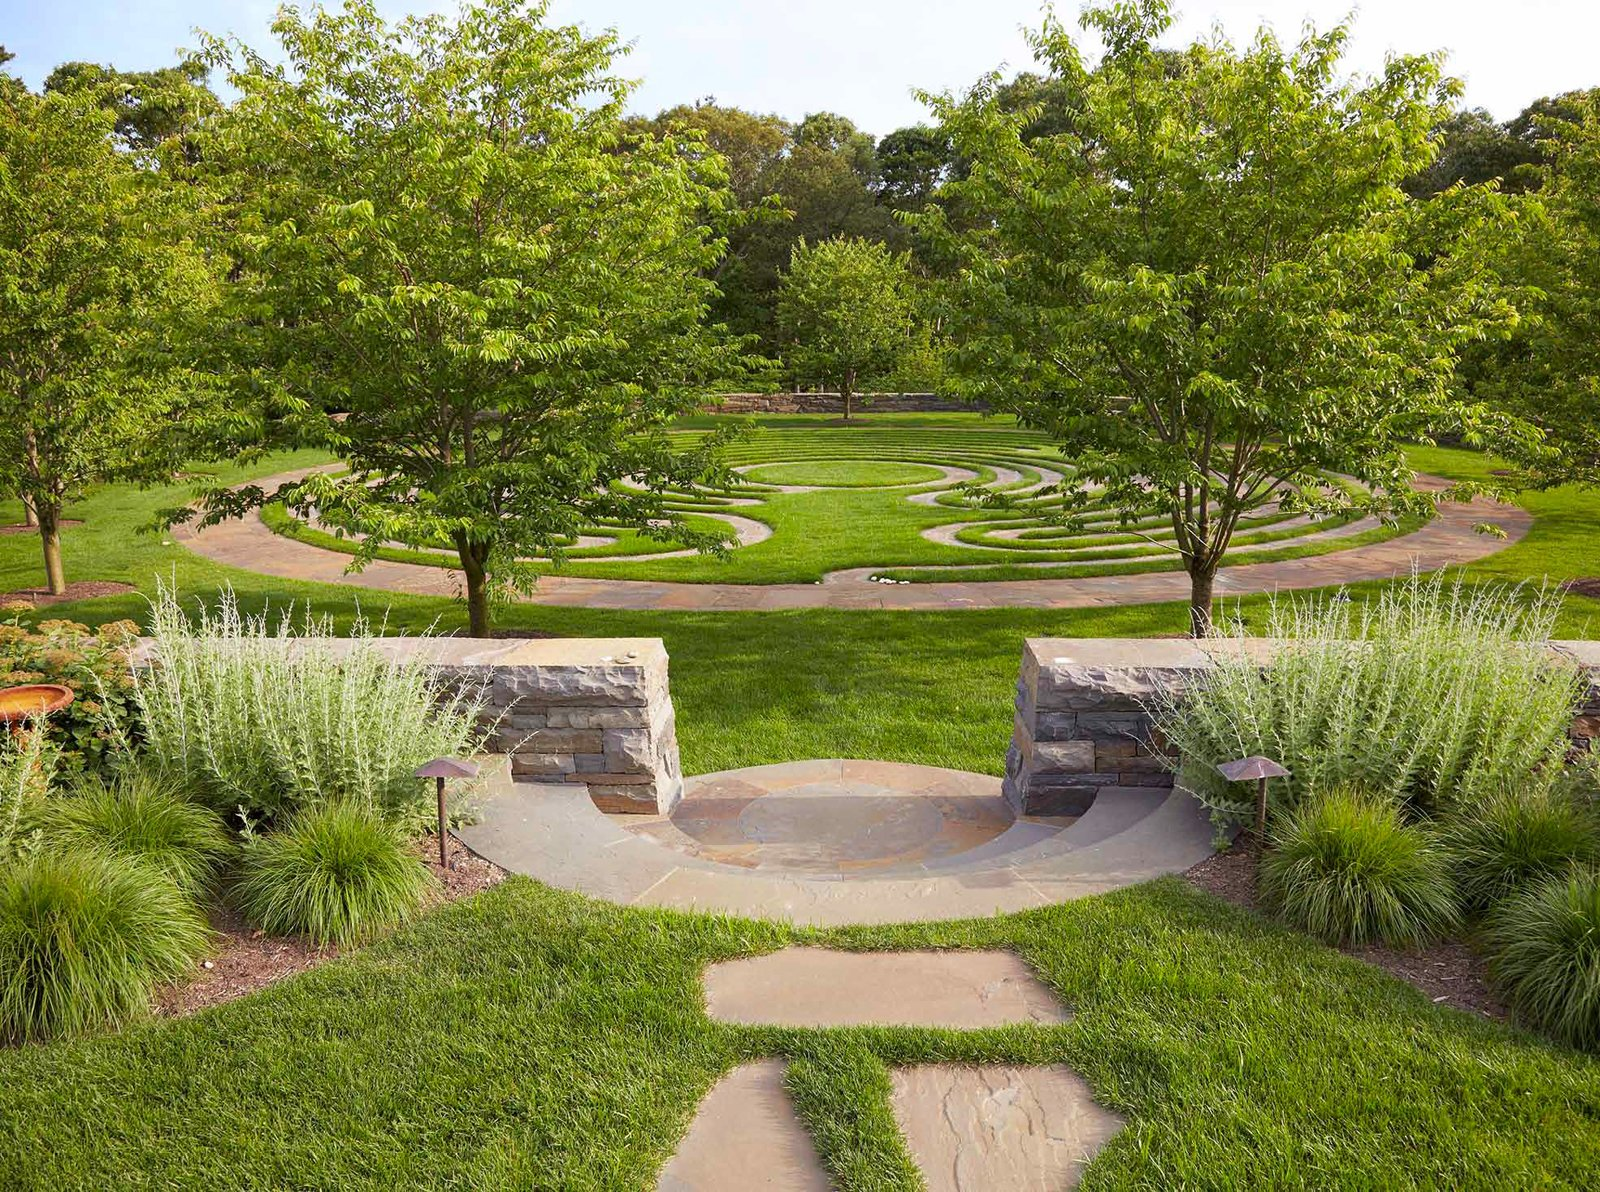 Edmund Hollander Landscape Architects took cues from the natural environment in the landscaping of On The Bluff. Despite several unique elements including a labyrinth, built rock outcrop garden, curving infinity edge retaining pool, and grotto, the built environments blend with nature. Photo courtesy of Edmund Hollander Landscape Architects.  New York Landscape Architects Design Awards by Sara Carpenter